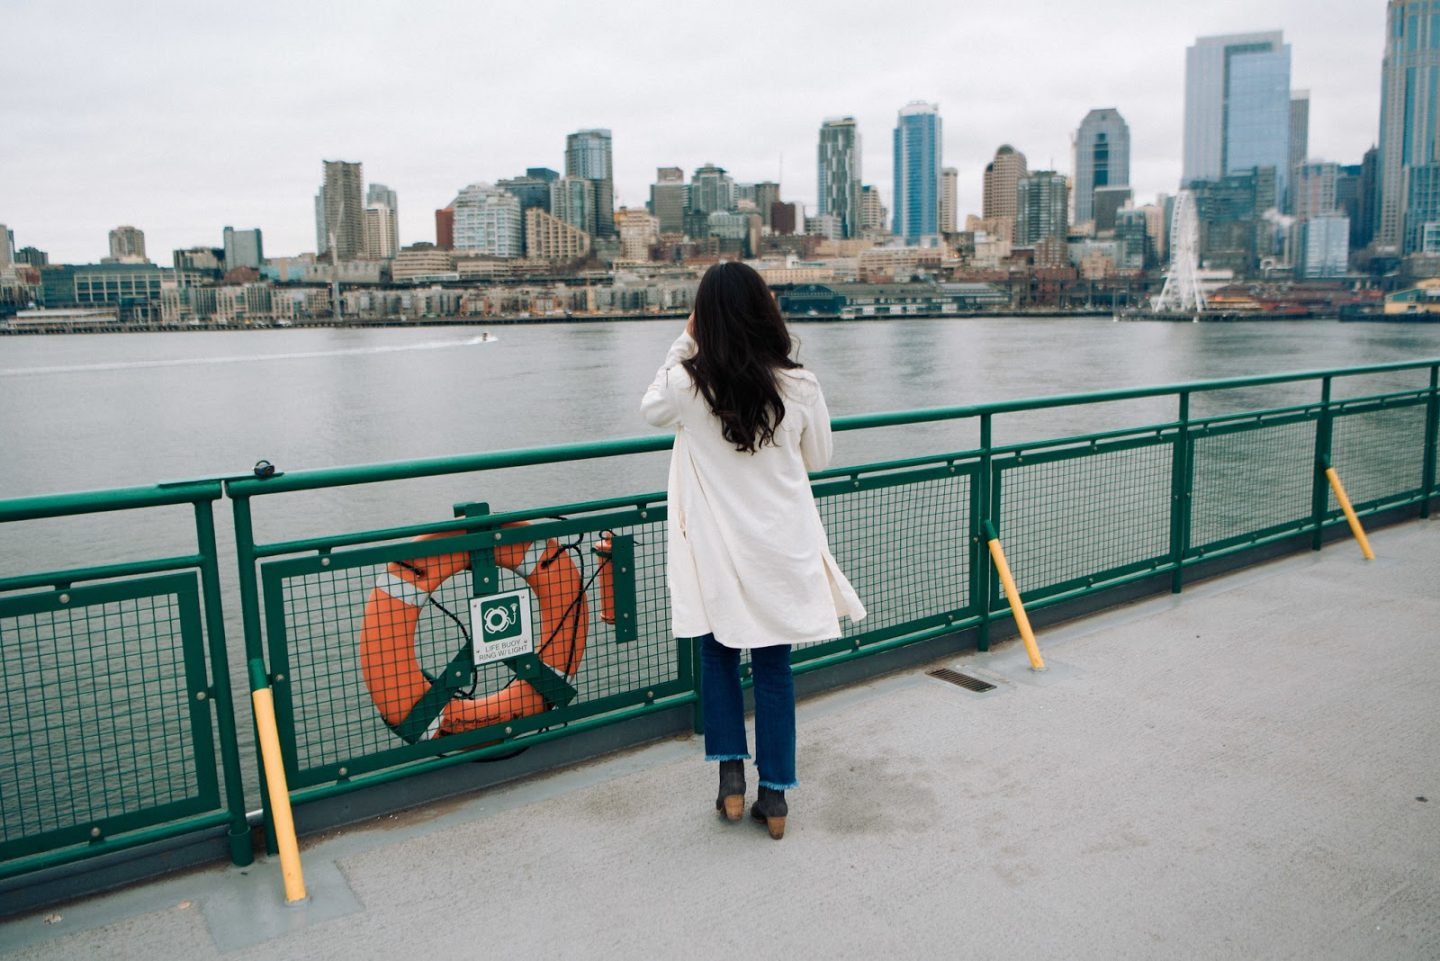 8 Unique Instagrammable Spots in Seattle – most Instagrammable spots in Seattle – instagrammable walls in Seattle – most instsgrammable places in Washington state – where to take photos in Seattle – Seattle photo locations - visit seattle